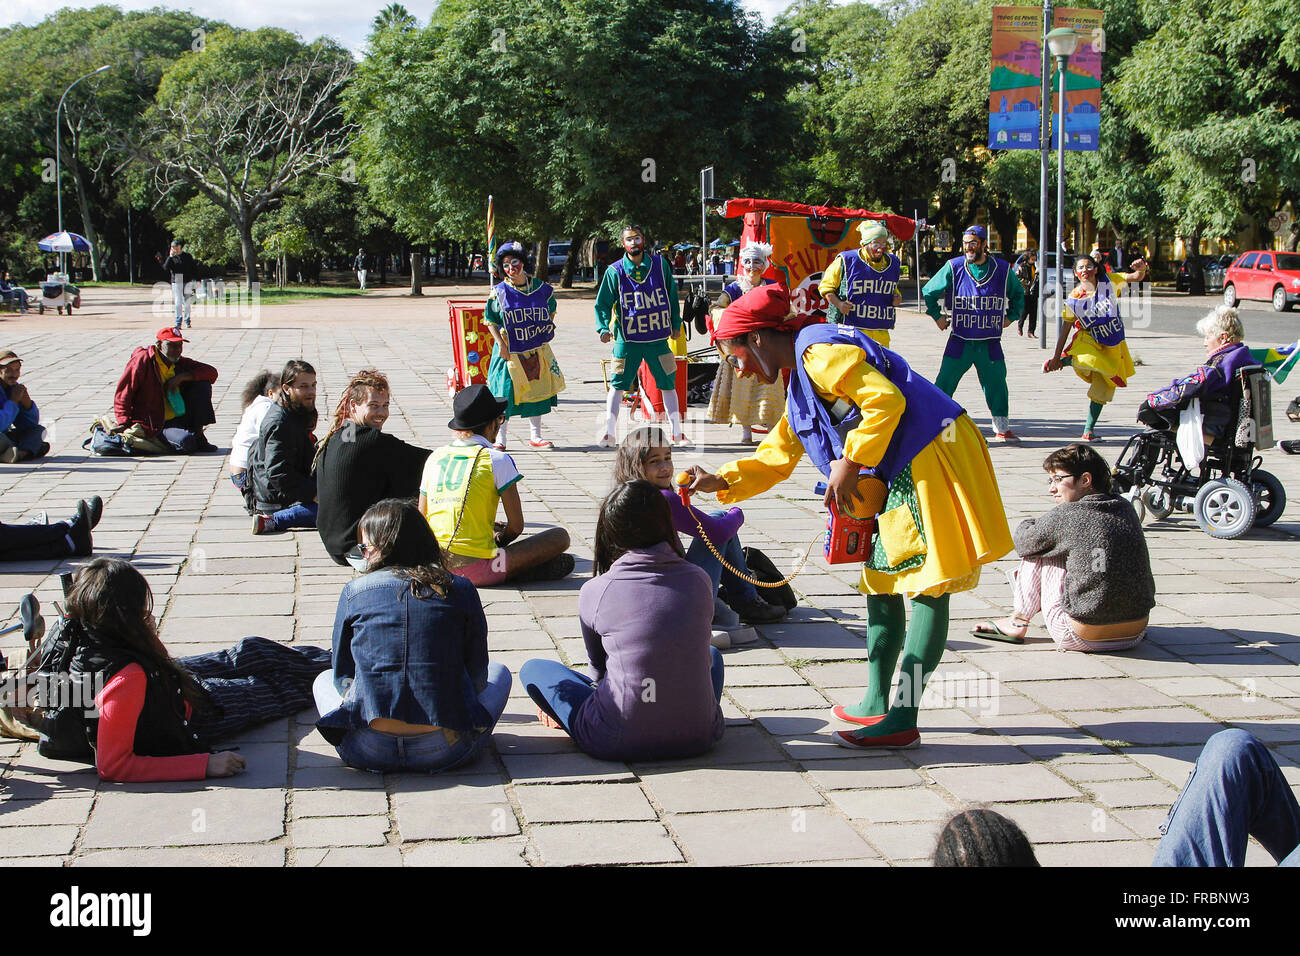 Peaceful protest at Farringdon Park also known as Park Redemption - Stock Image